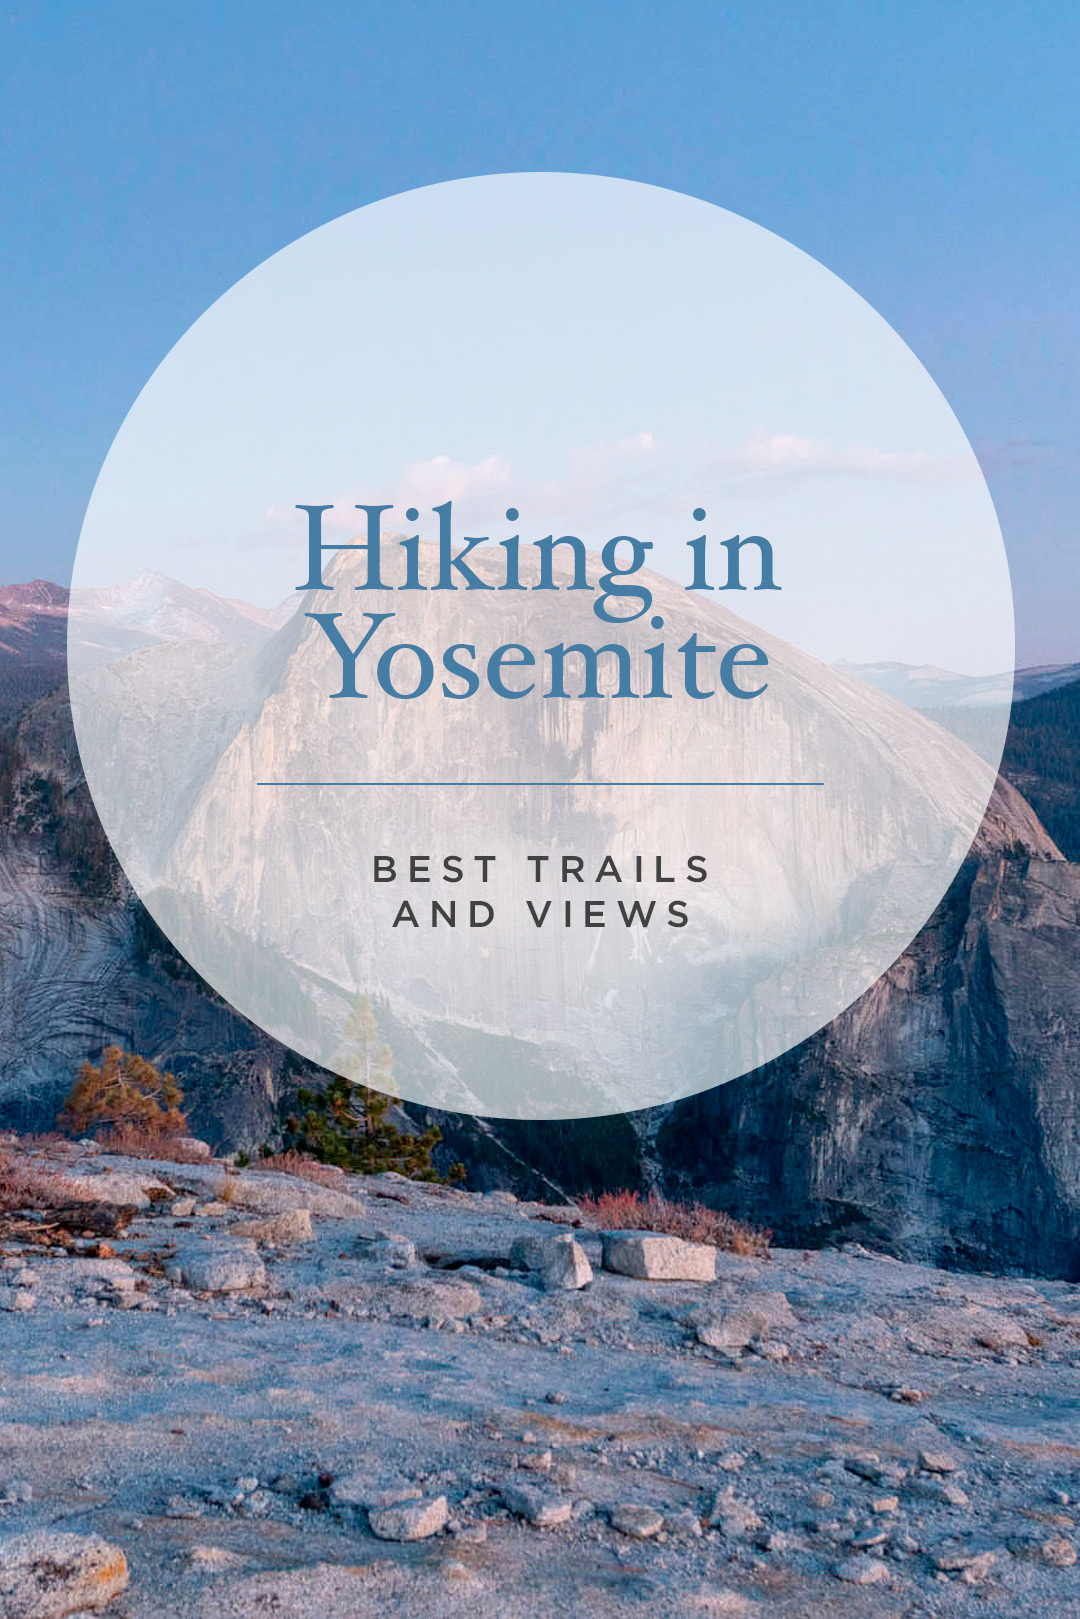 Are you going to be in Yosemite National Park? Save this pin and click to see details on the 11 best hikes in Yosemite National Park you shouldn't miss. These Yosemite hiking trails are also some of the best hikes in California and the US that you'll want to add to your hiking bucket lists. They take you to the most beautiful places, waterfalls, and views in Yosemite. (photo: Josh McNair of ThroughMyLens) // Local Adventurer #localadventurer #yosemite #california #nationalpark #visitcalifornia #visitca #findyourpark